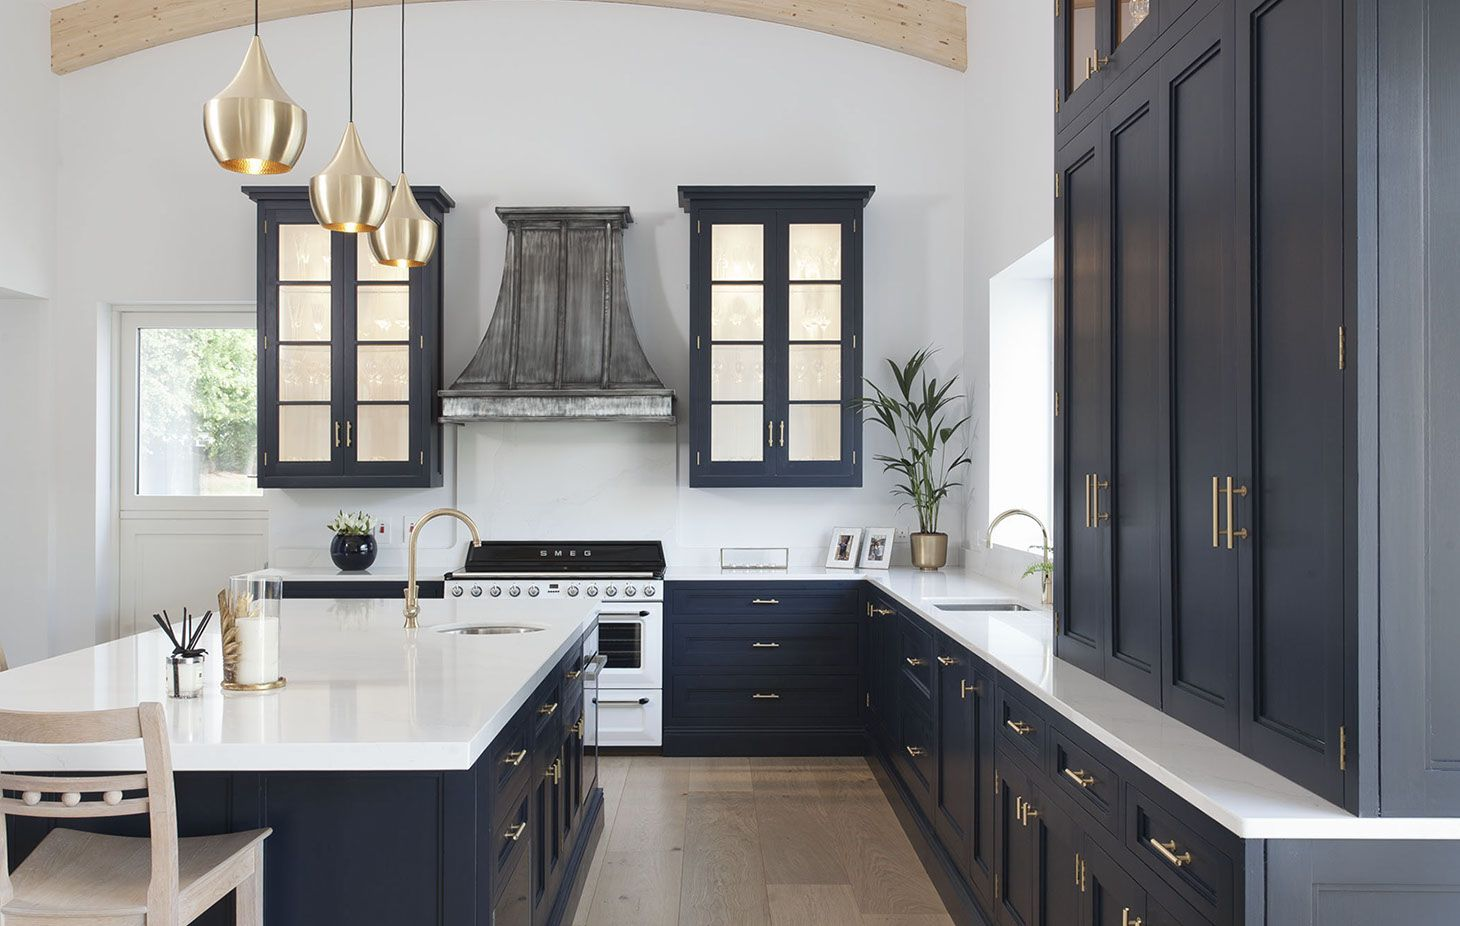 Bespoke Kitchen With Extra Height Units And Brass Handles Interior Design Kitchen Small Kitchen Design Interior Design Kitchen